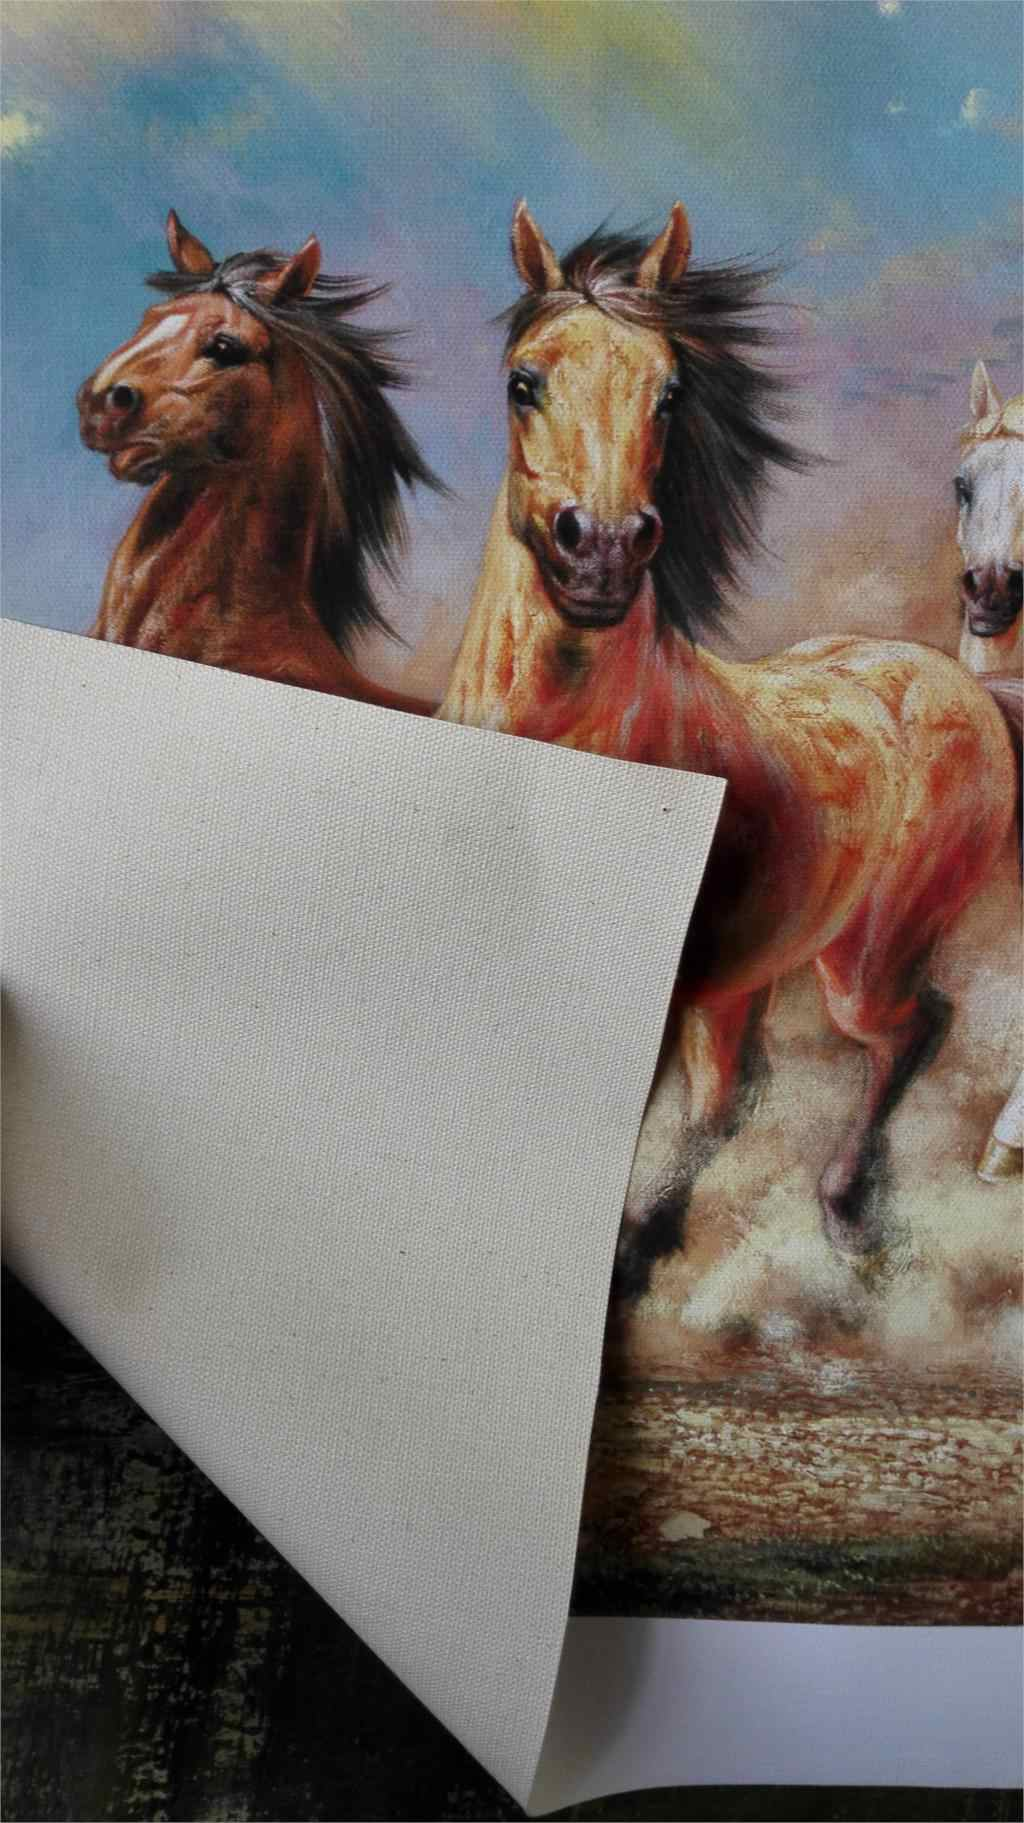 a851da021 ... 8 Running Horse Animal Modern Printed Oil Painting On Canvas Cotton  Wall Paintings Picture For Living ...